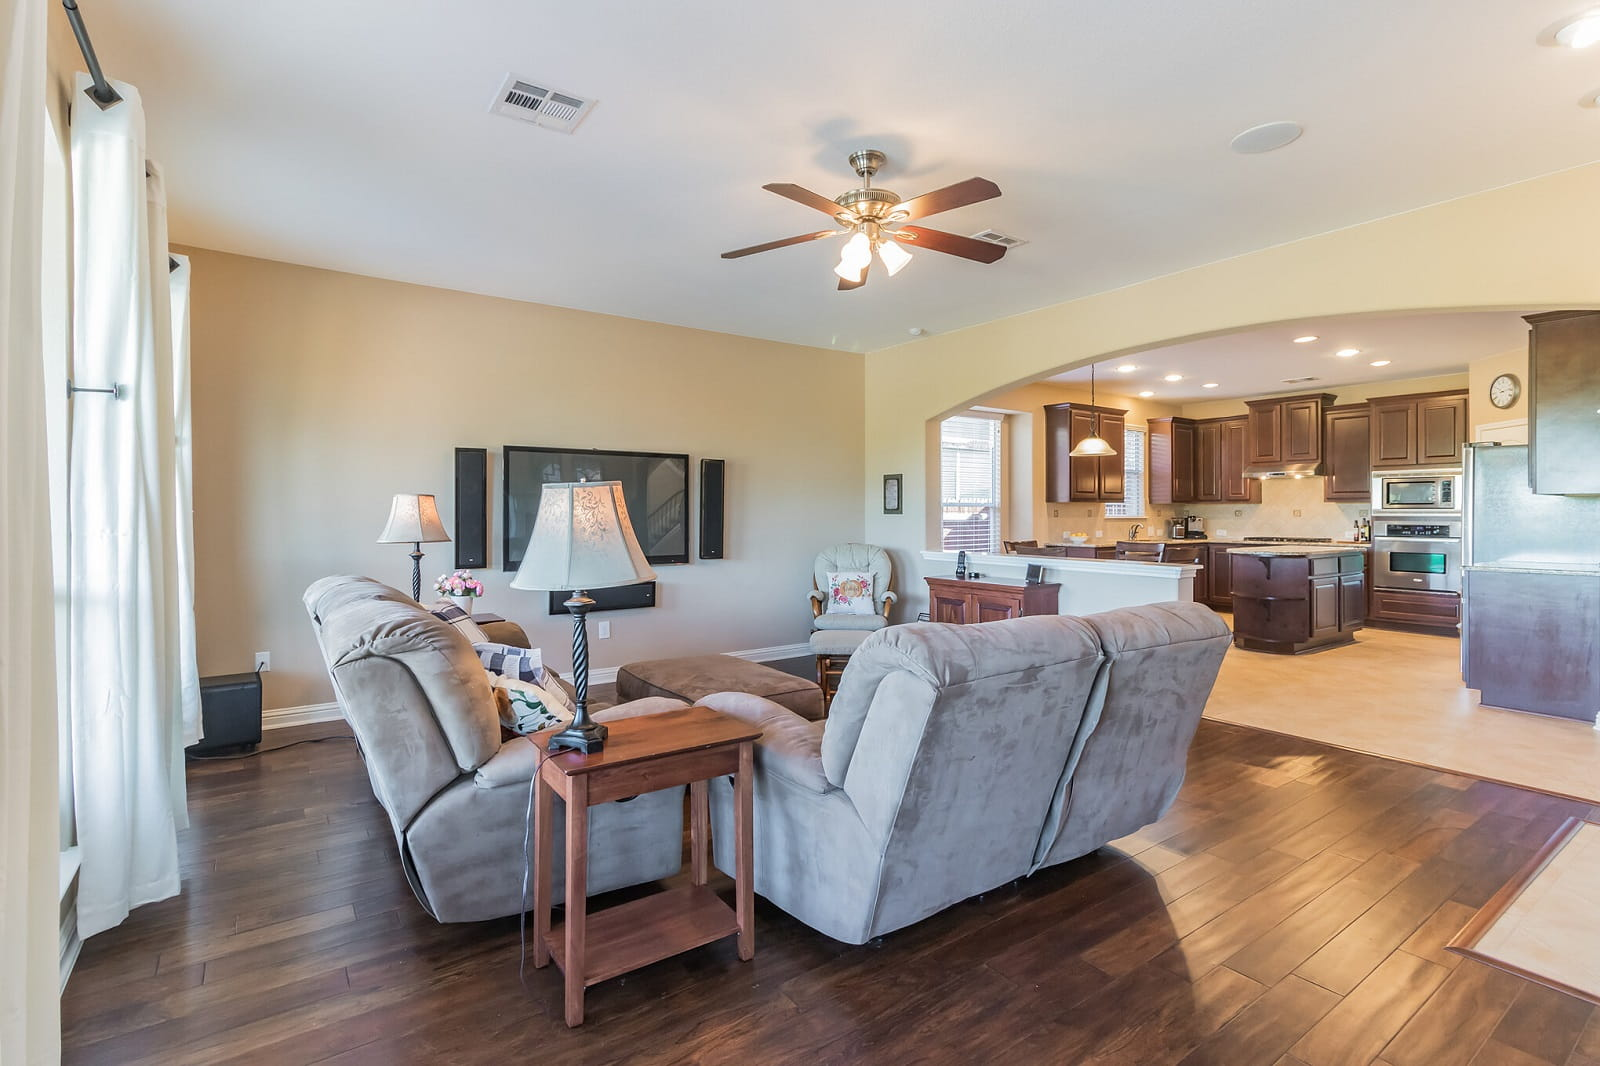 Real Estate Photography in Round Rock - TX - Living Area View